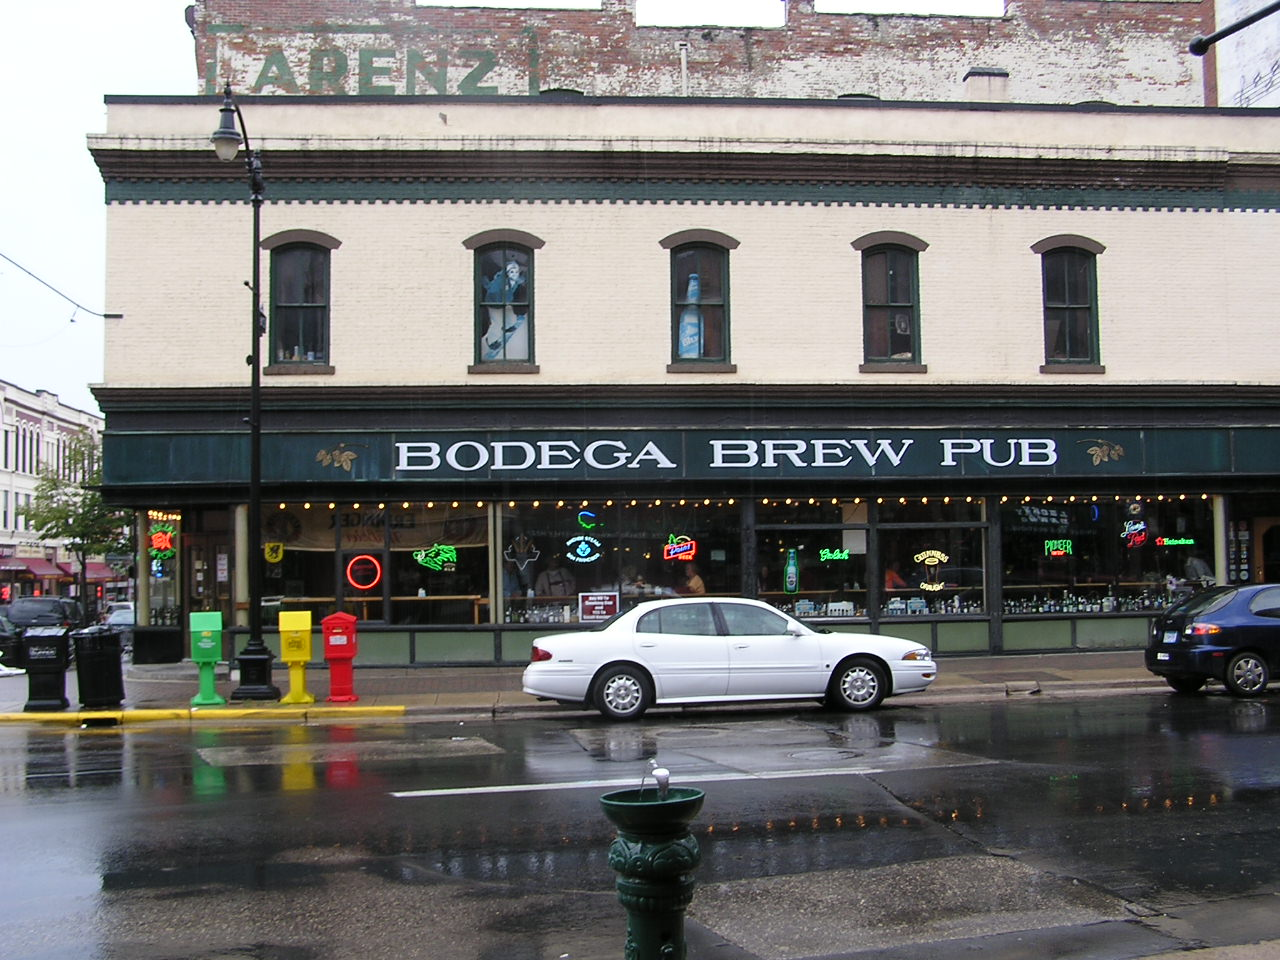 The Bodega Brewpub